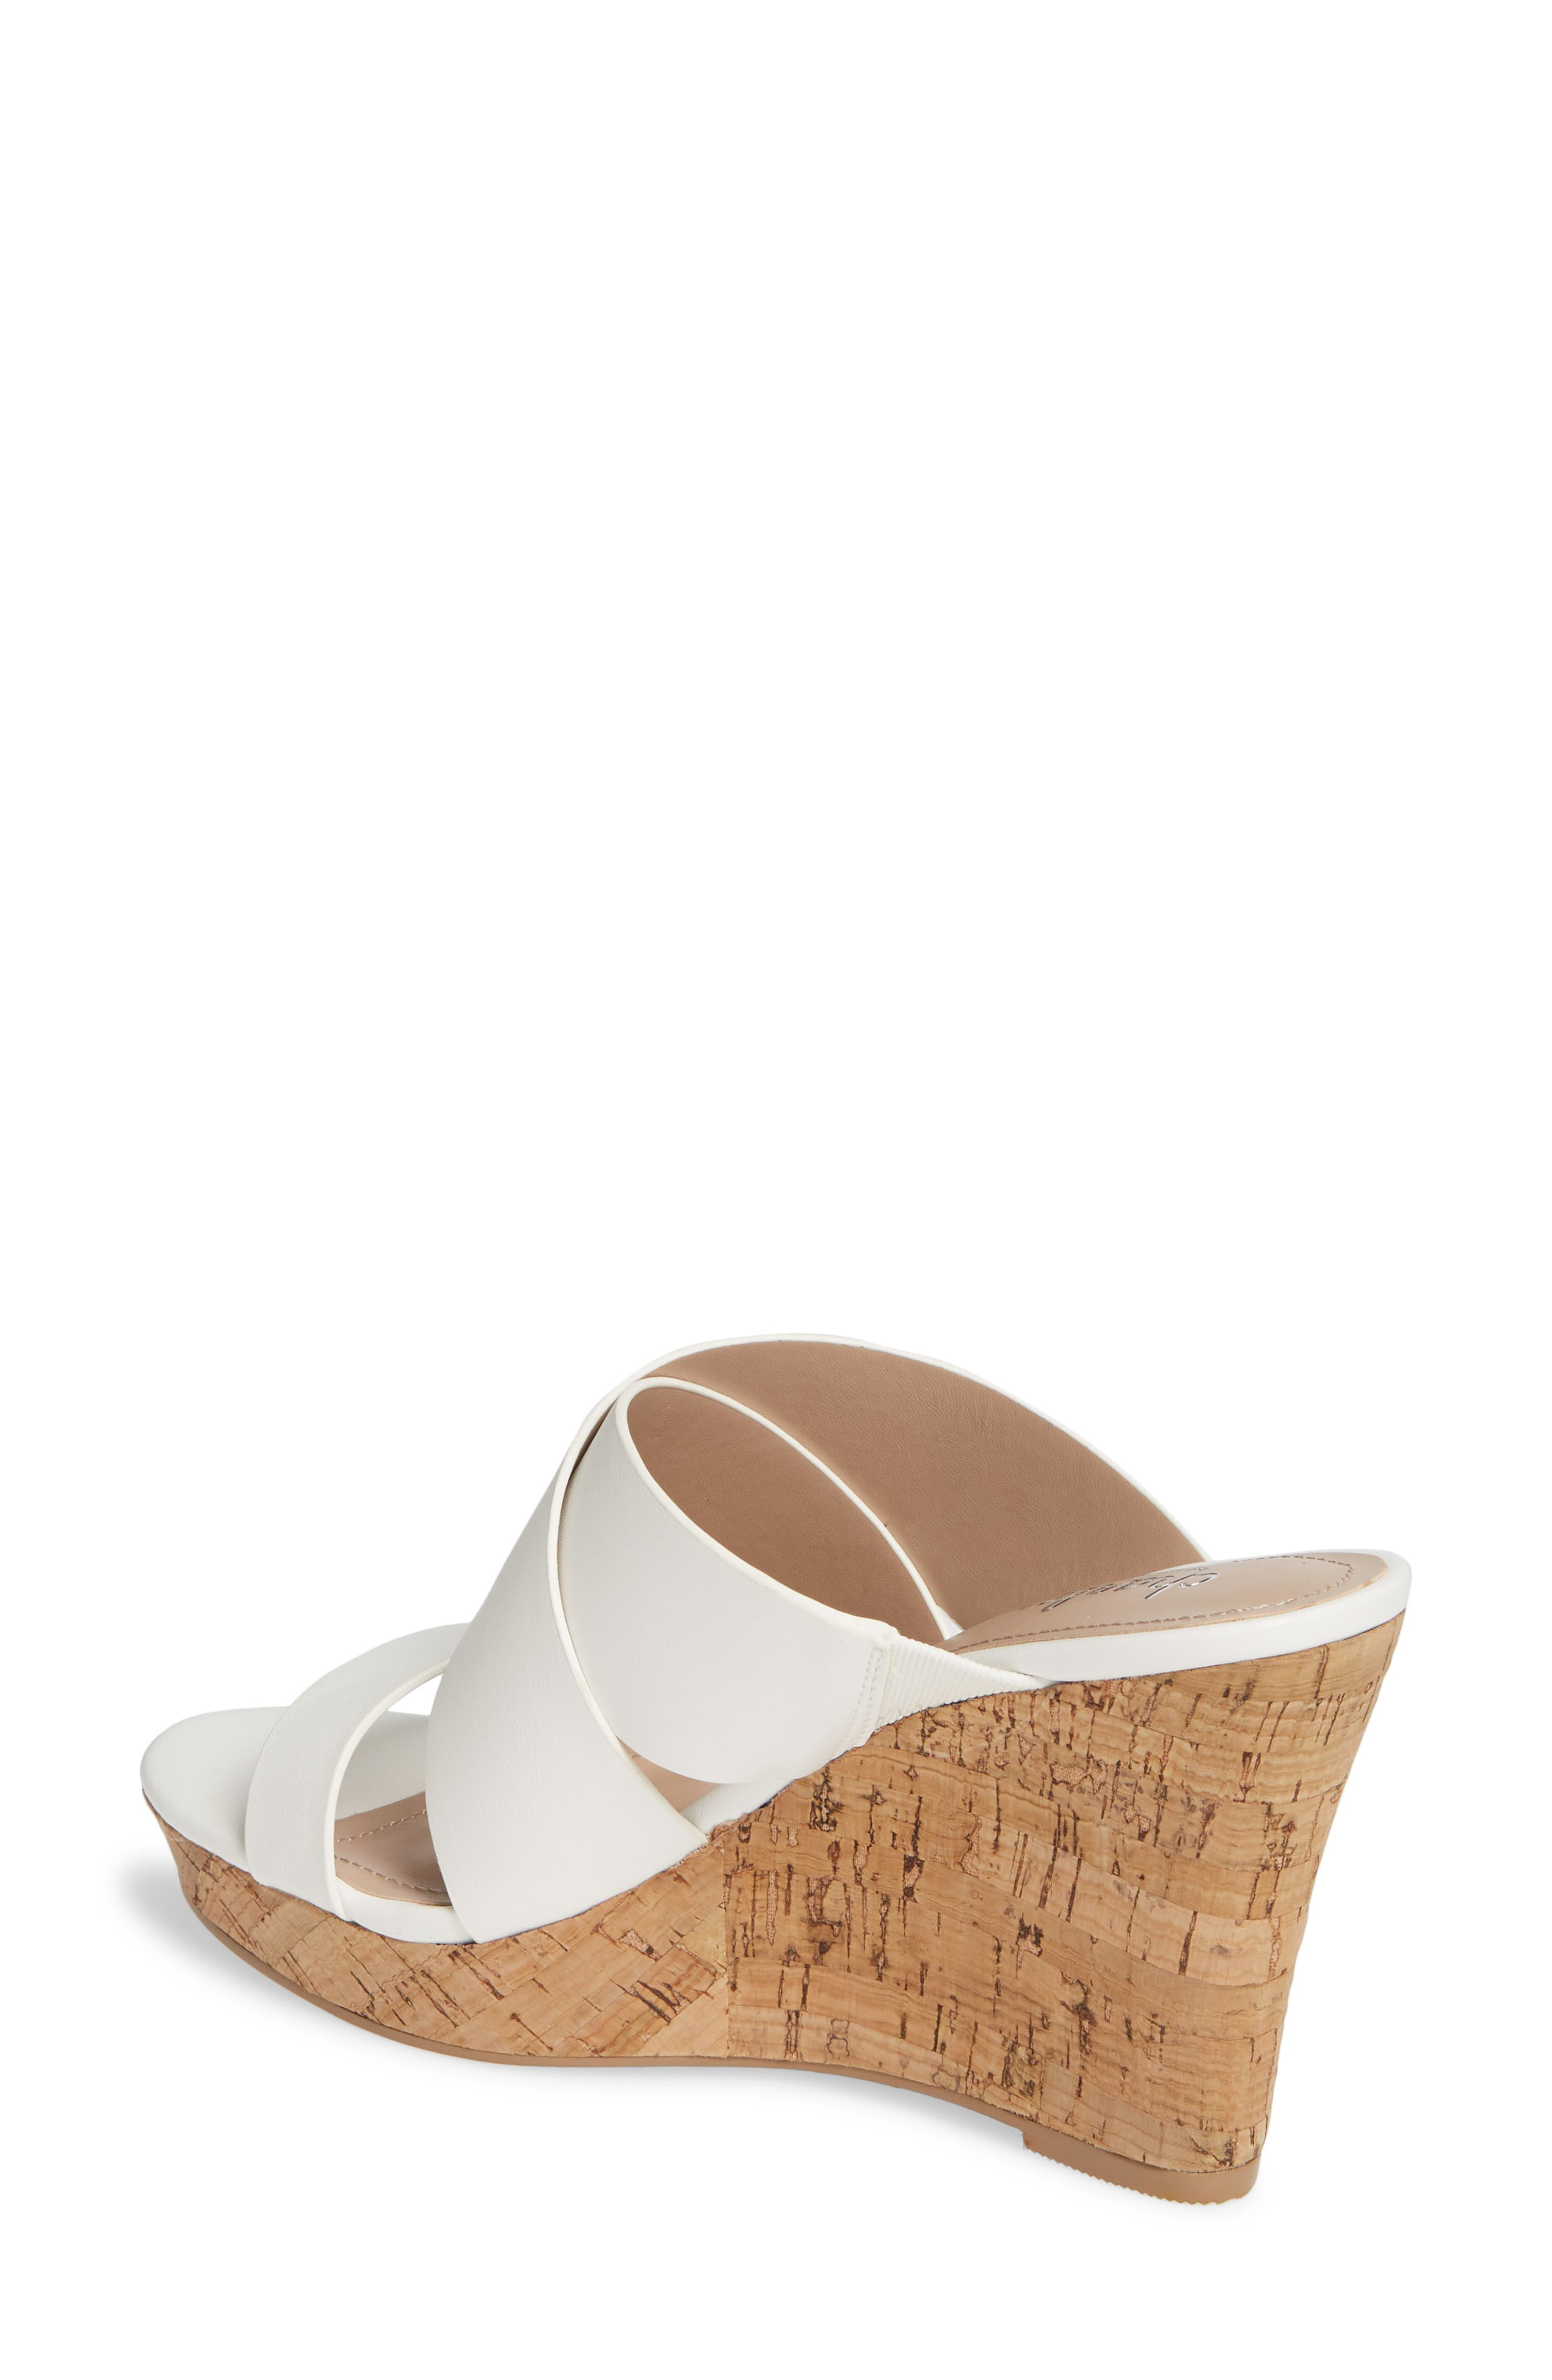 CHARLES BY CHARLES DAVID, Leslie Wedge Sandal, Alternate thumbnail 2, color, WHITE FAUX LEATHER